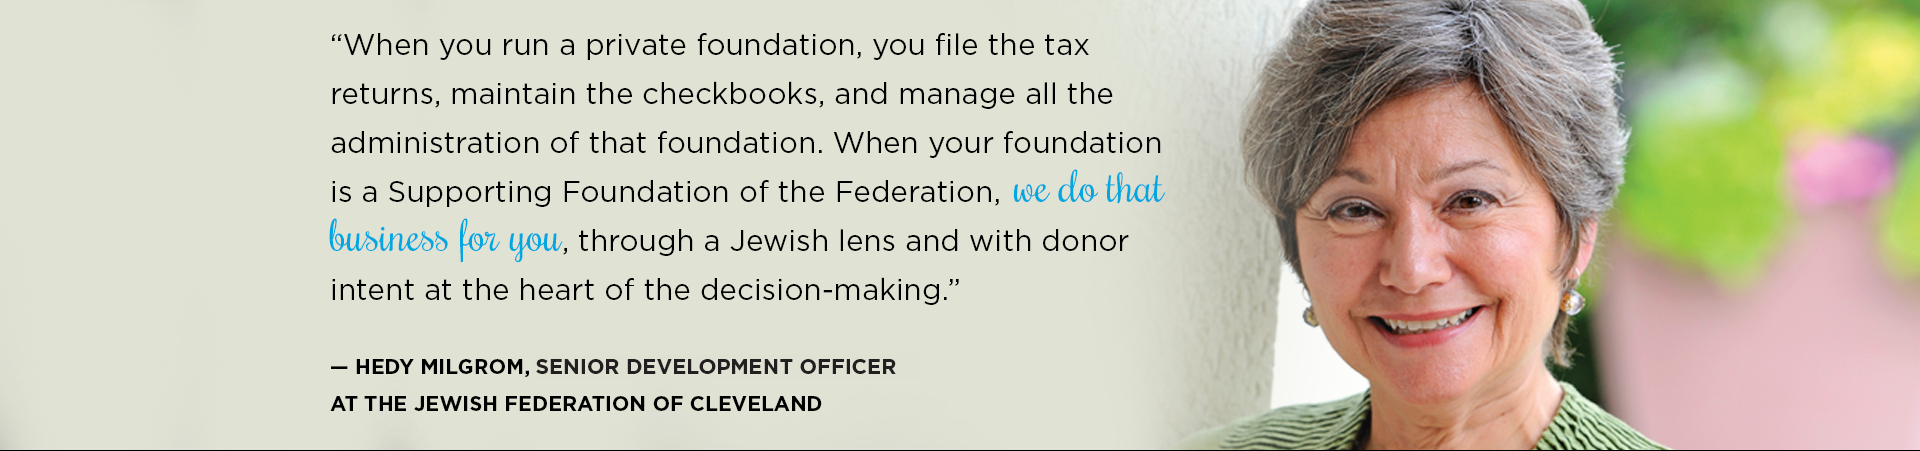 """When you run a private foundation, you file the tax returns, maintain the checkbooks, and manage all the administration of that foundation. When your foundation is a Supporting Foundation of the Federation, we do that business for you, through a Jewish lens and with donor intent at the heart of the decision-making."" — Hedy Milgrom, Chief Development Officer at the Jewish Federation of Cleveland"